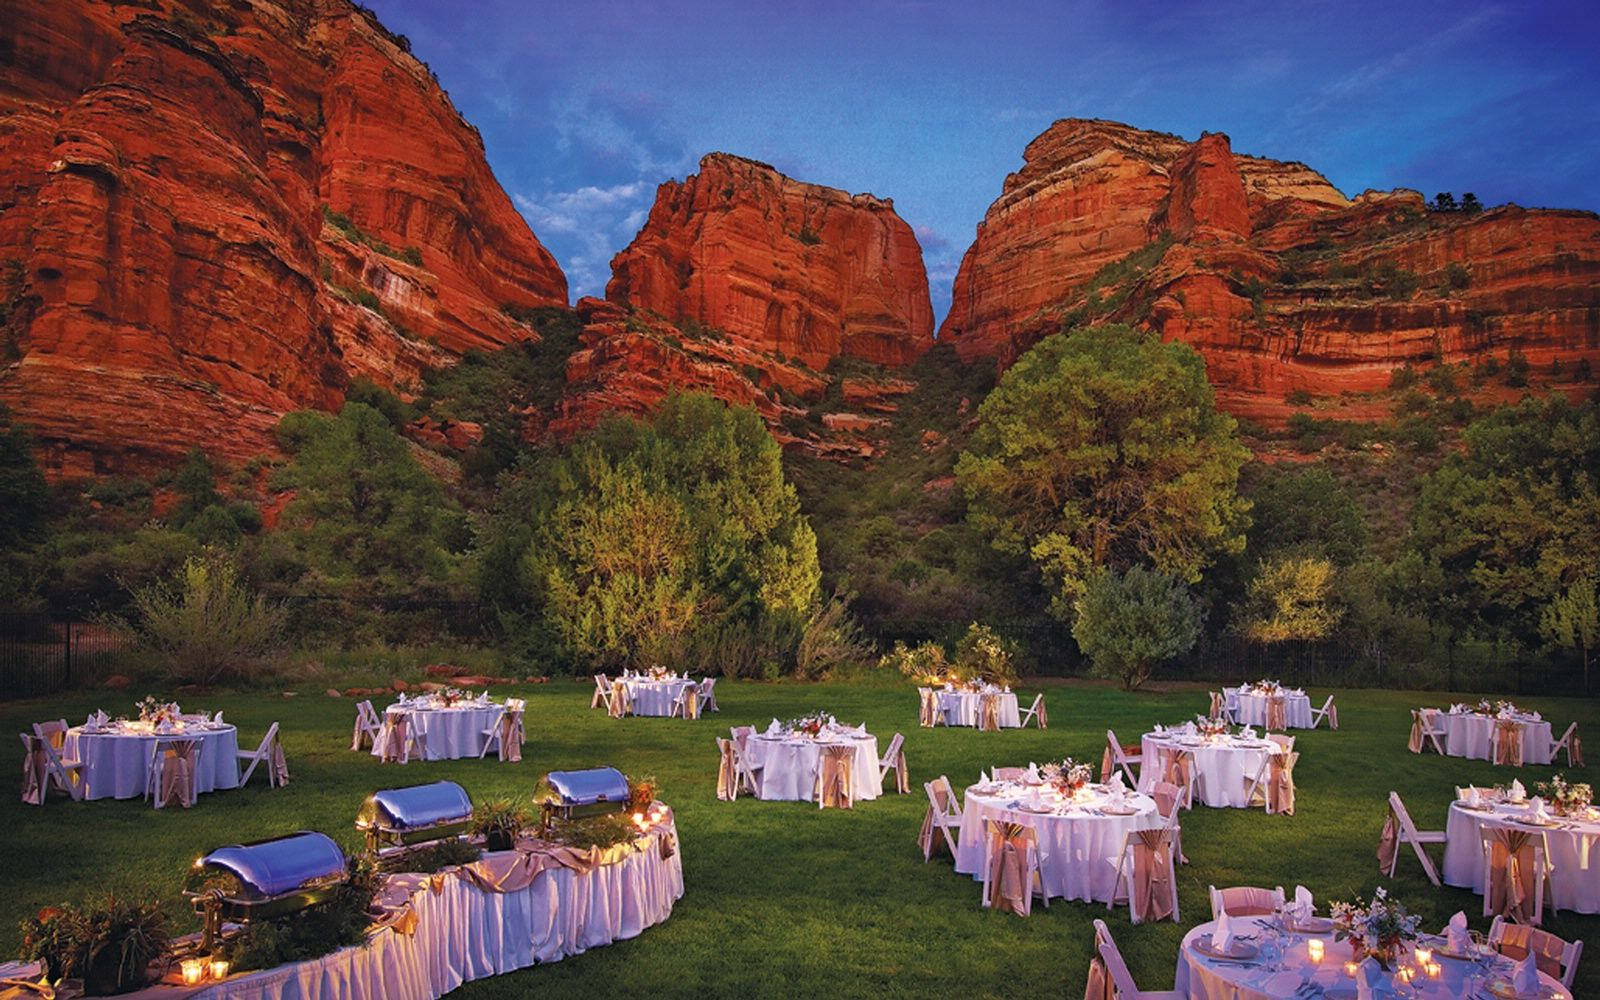 Best Luxury Hotel Sedona Arizona